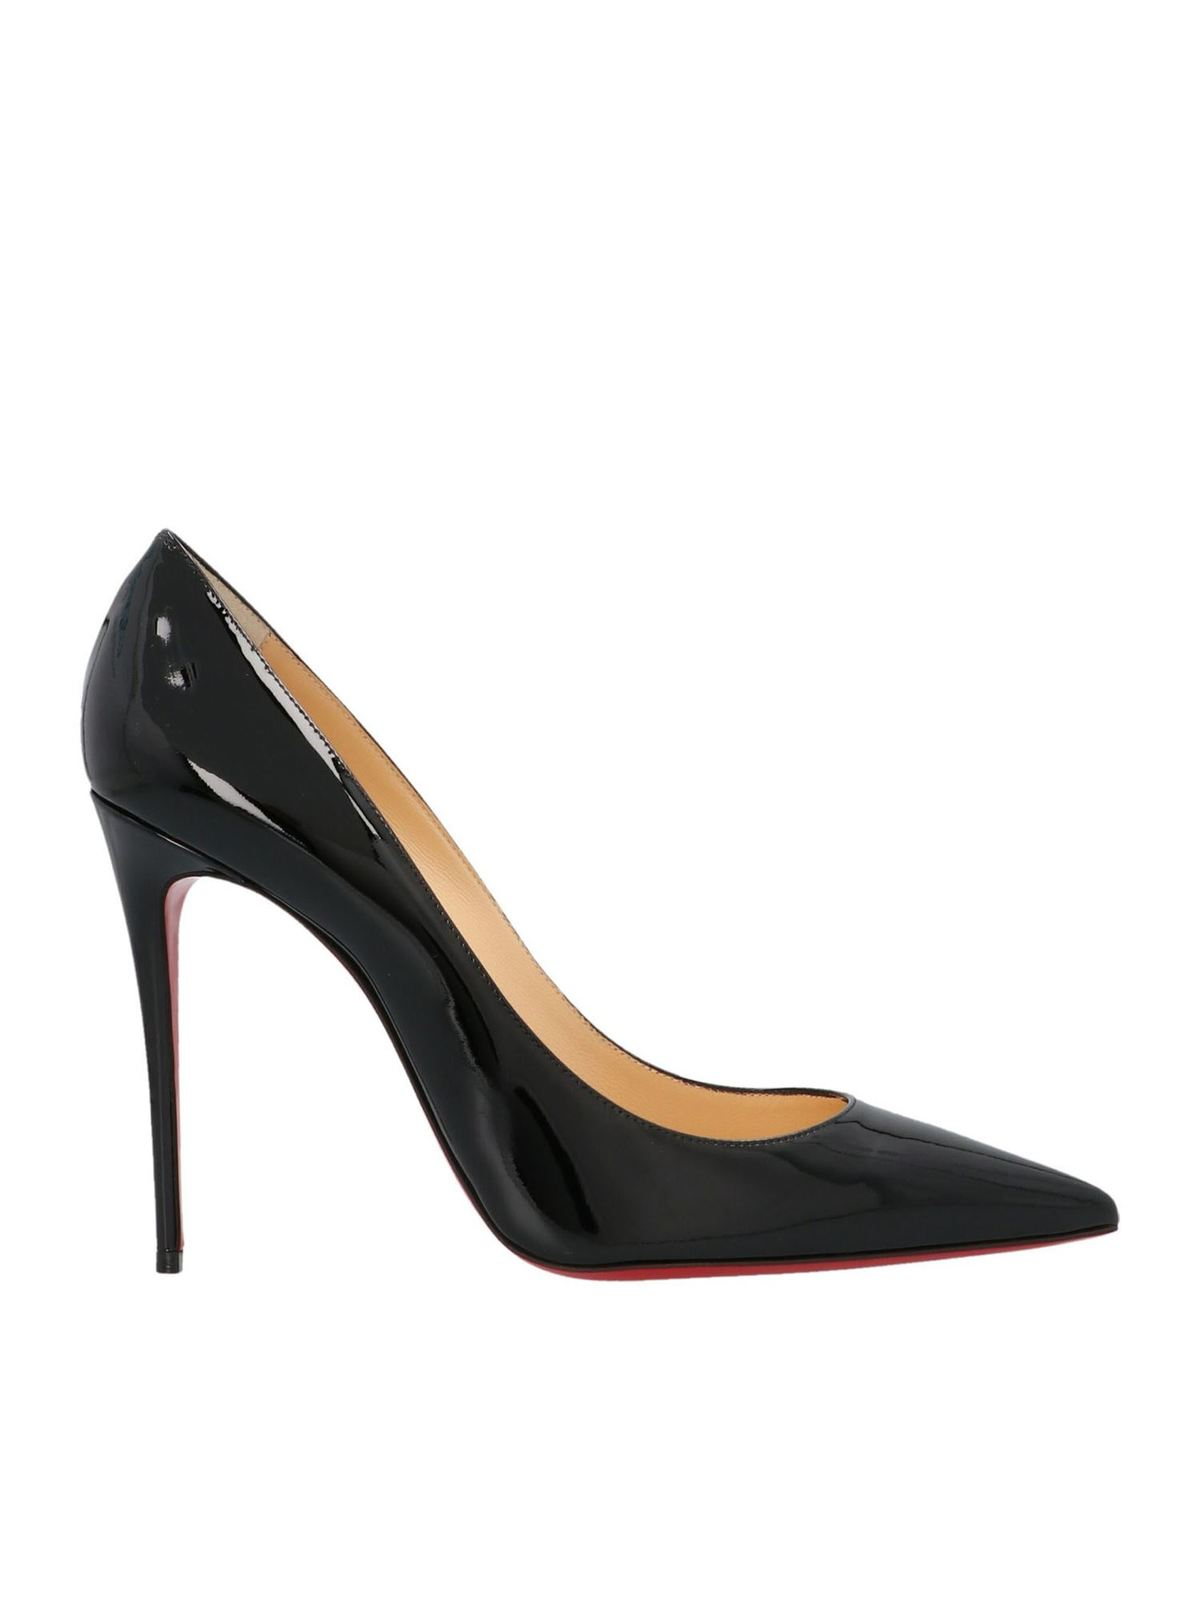 Christian Louboutin KATE 10 PUMPS IN BLACK PATENT LEATHER